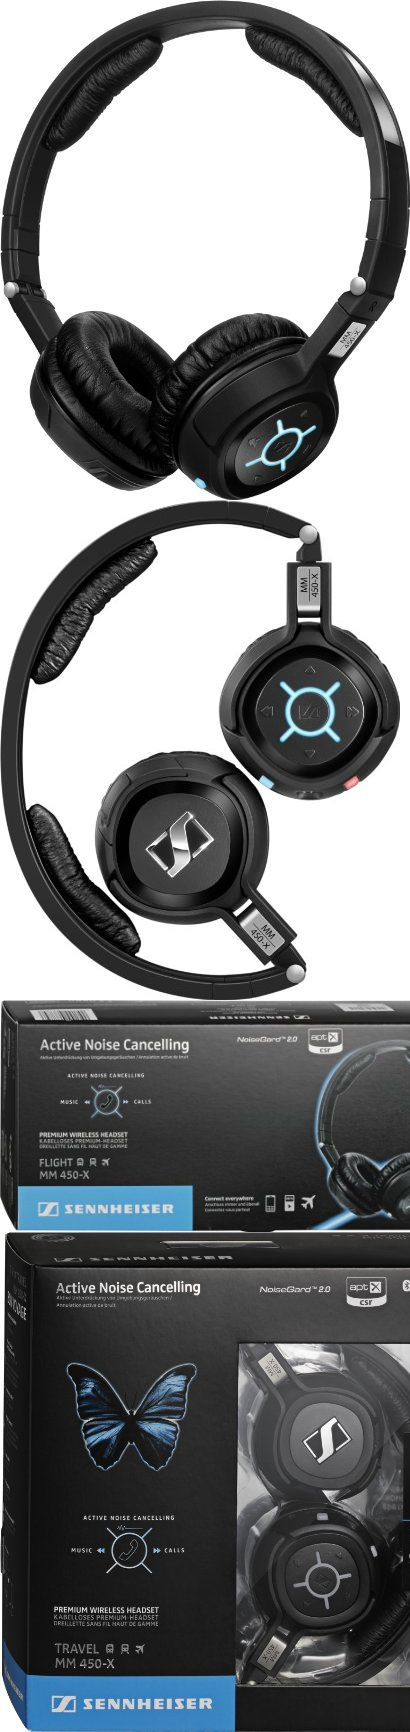 Sennheiser MM 450-X Wireless Bluetooth Headphones - Black, Noise-canceling, stereo Bluetooth headset with CD-quality sound, padded on-the-ear cushions and foldable construction, #Electronics, #Headphones, $449.95